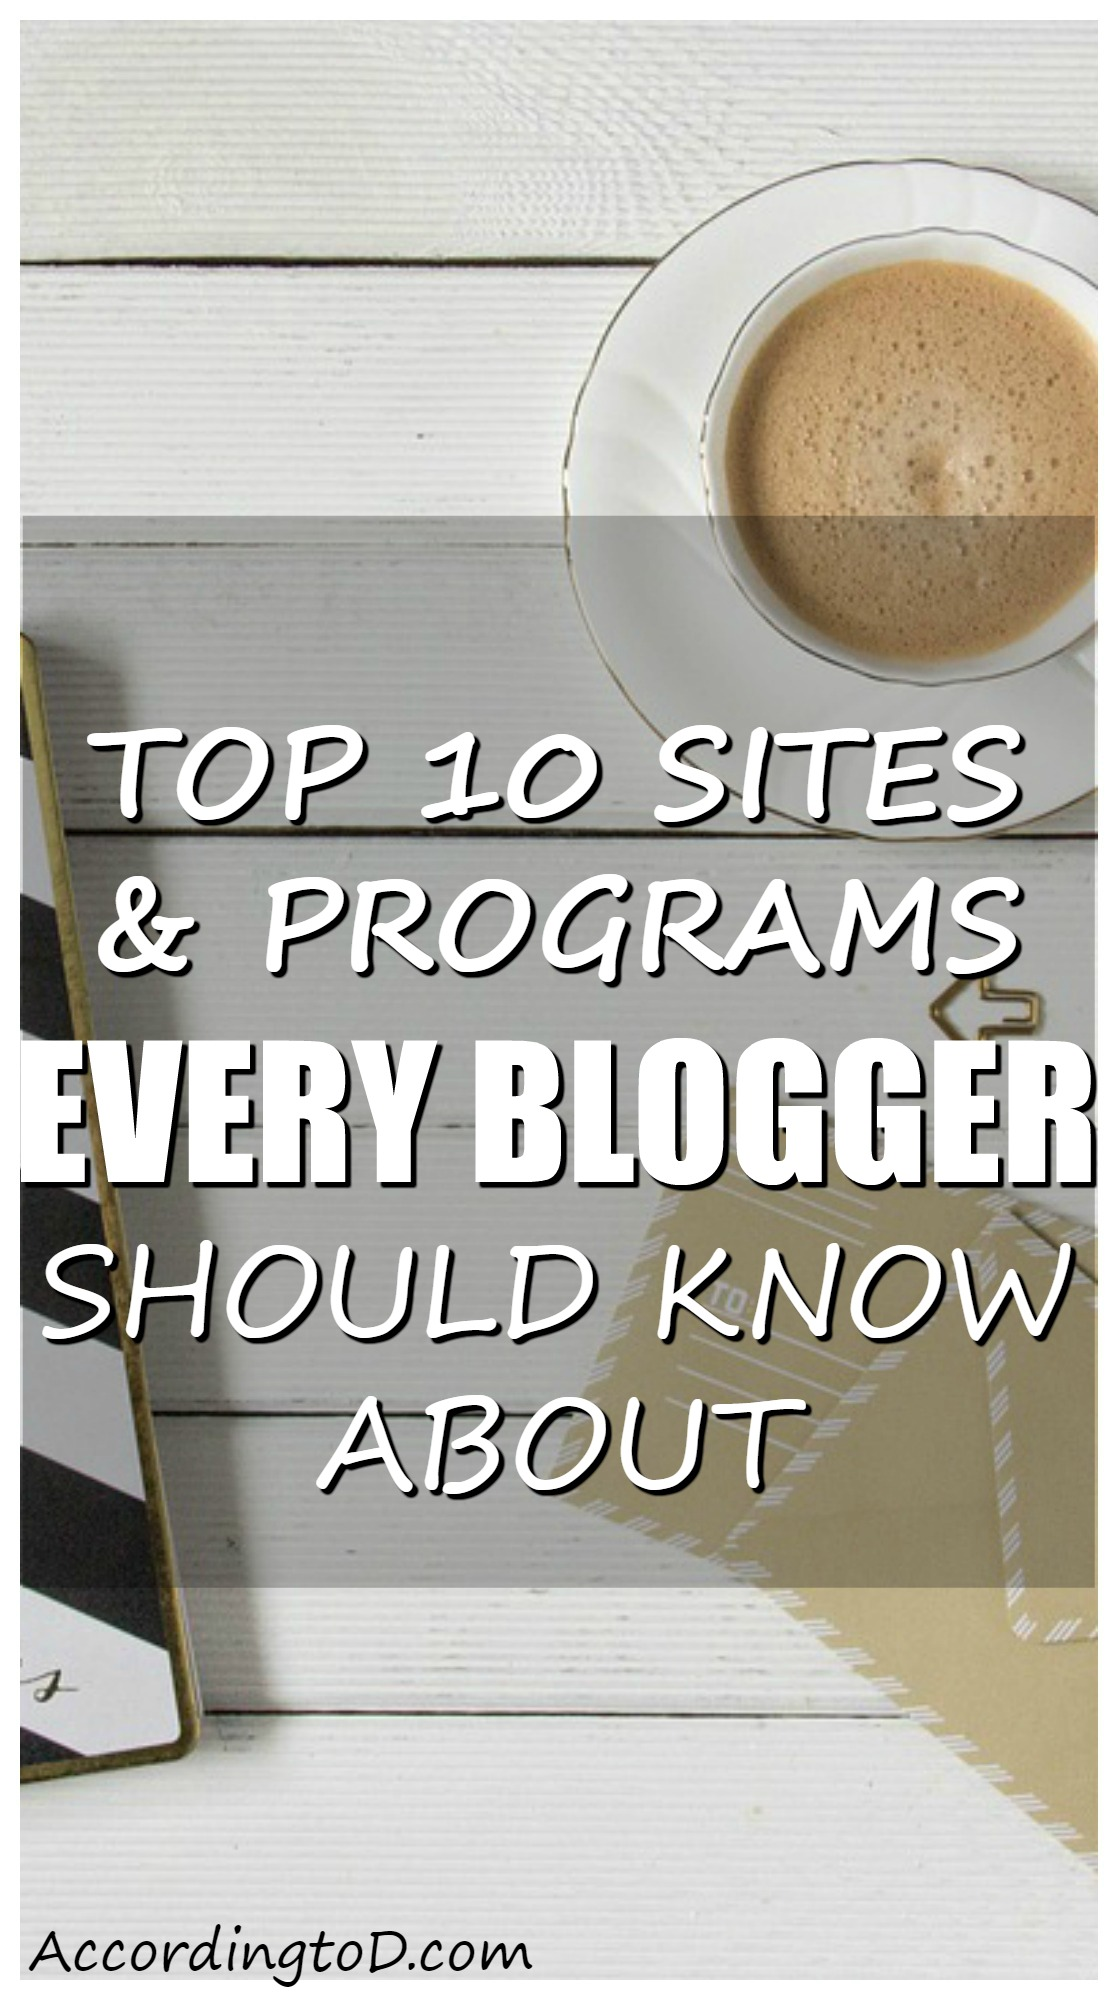 TOP 10 sites and programs for bloggers.jpg